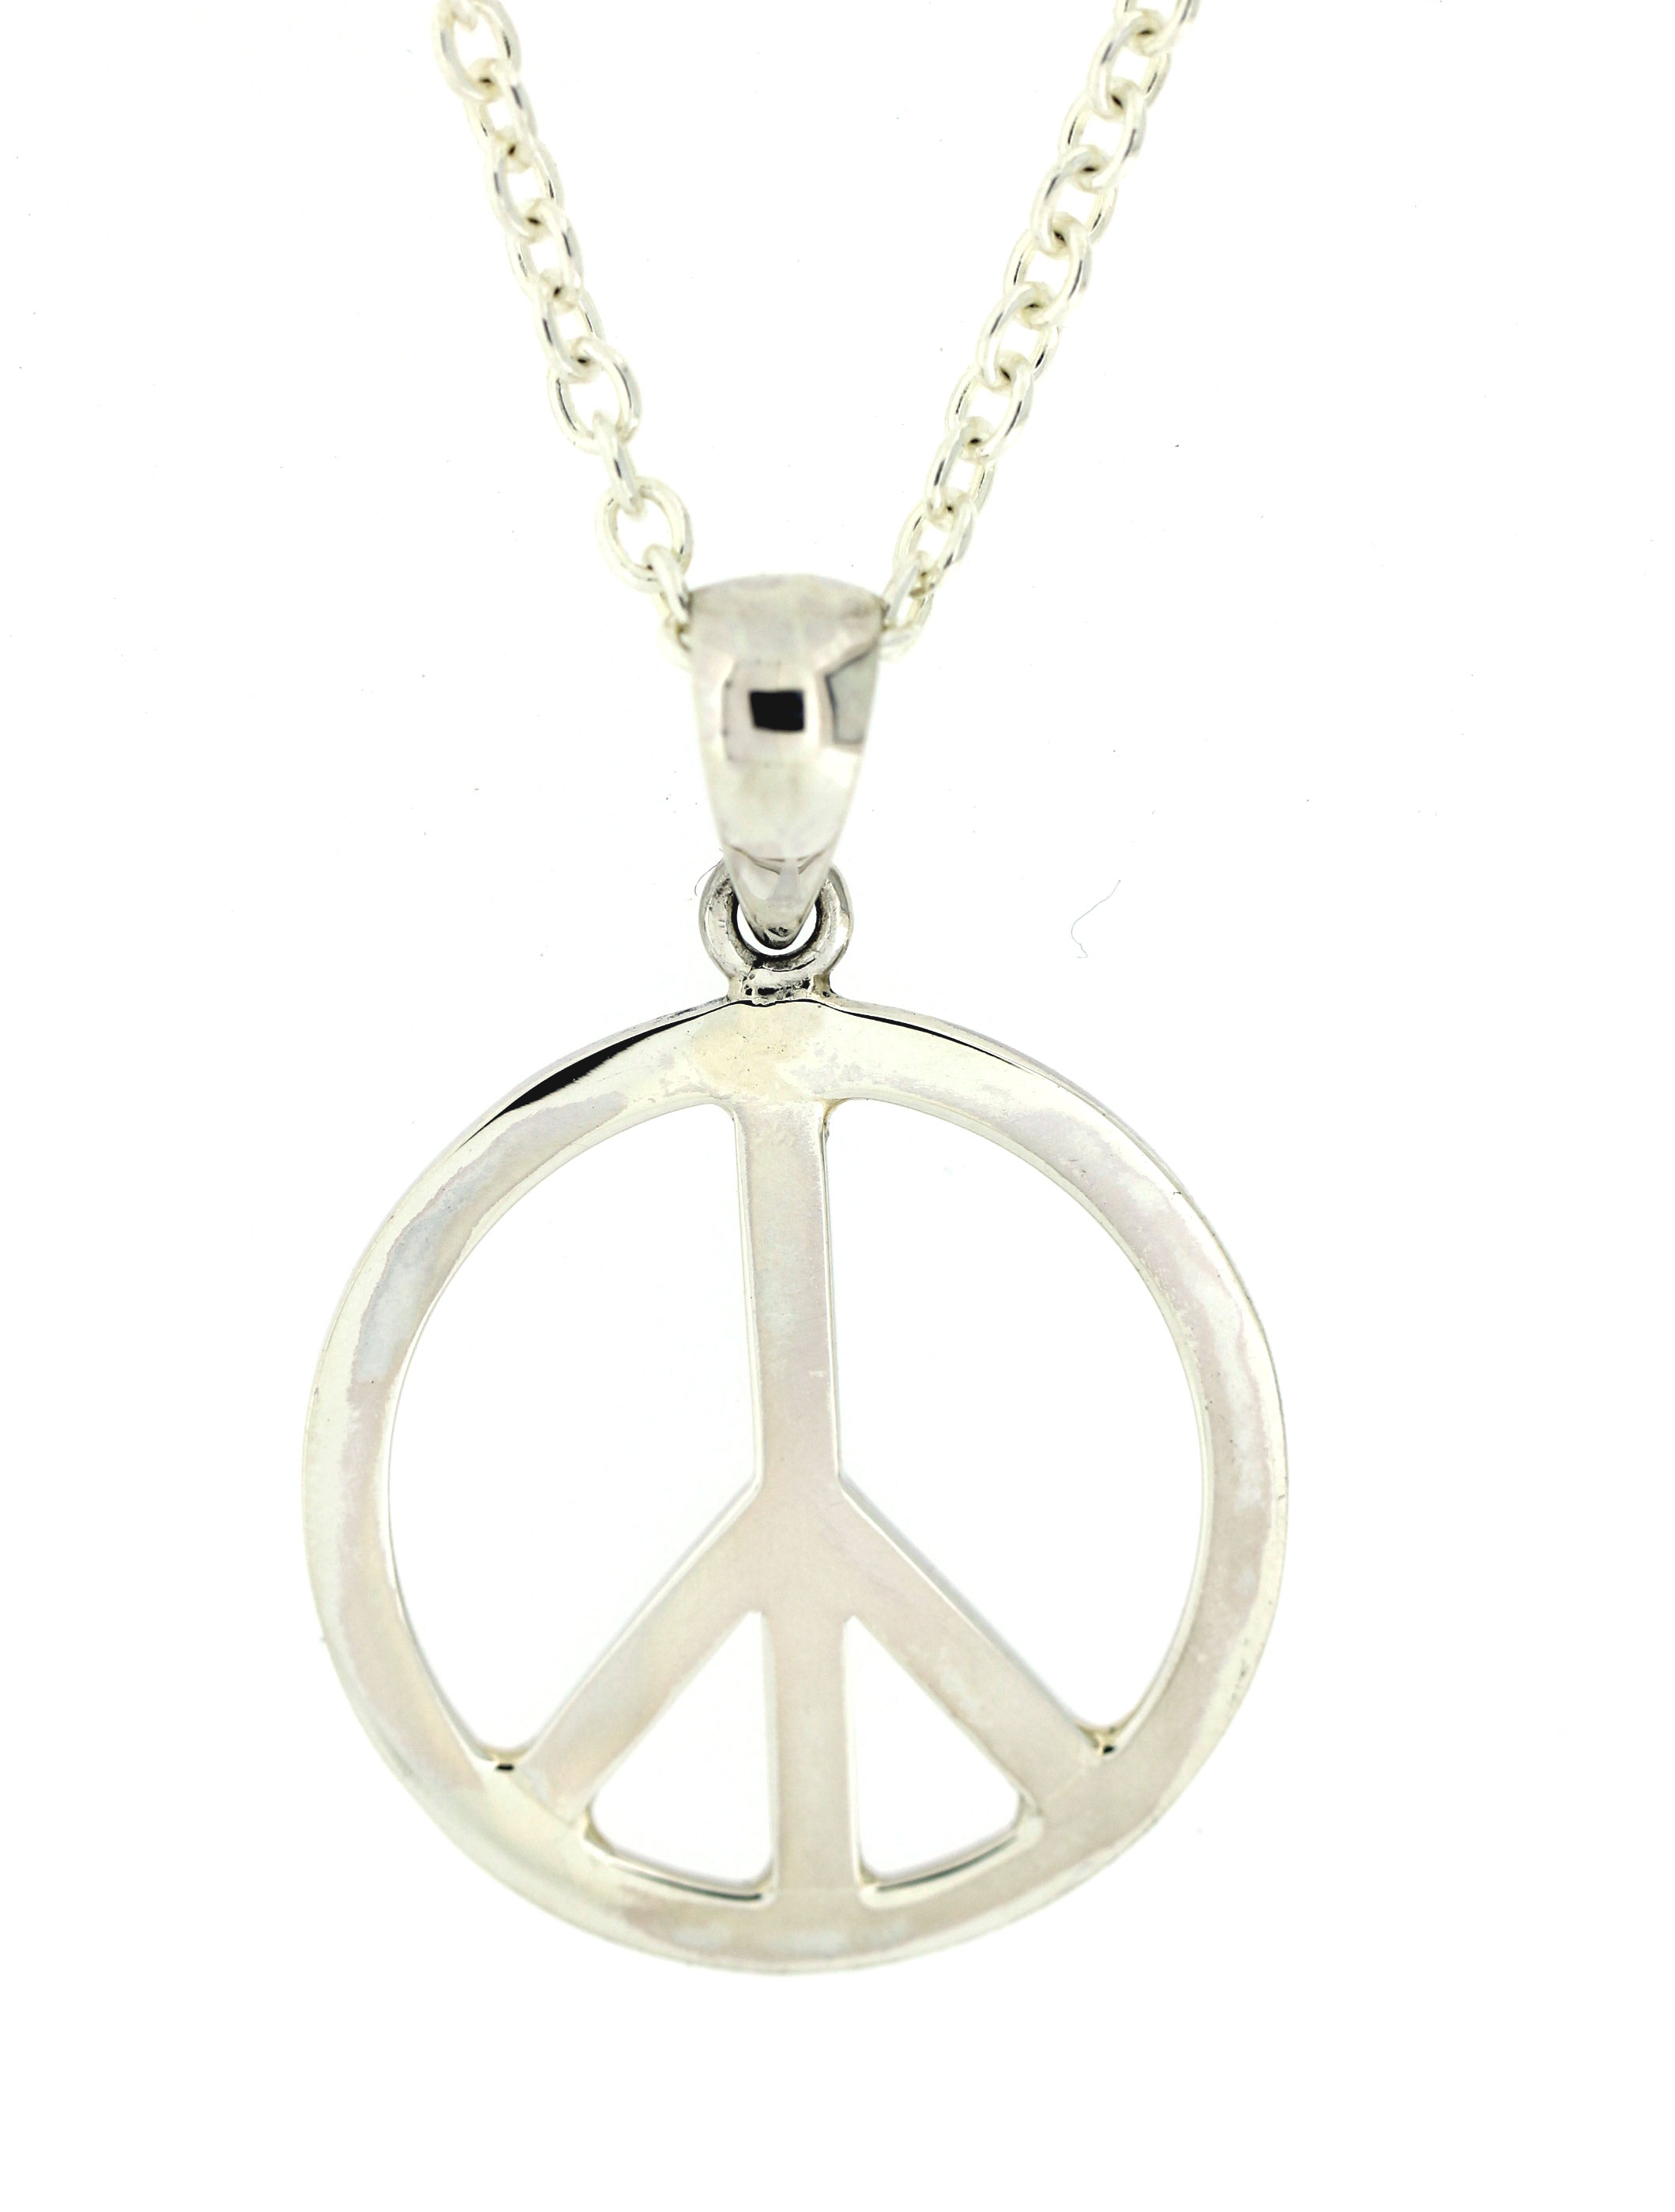 necklace pin peace pendant beads handmade jewelry glass pearl